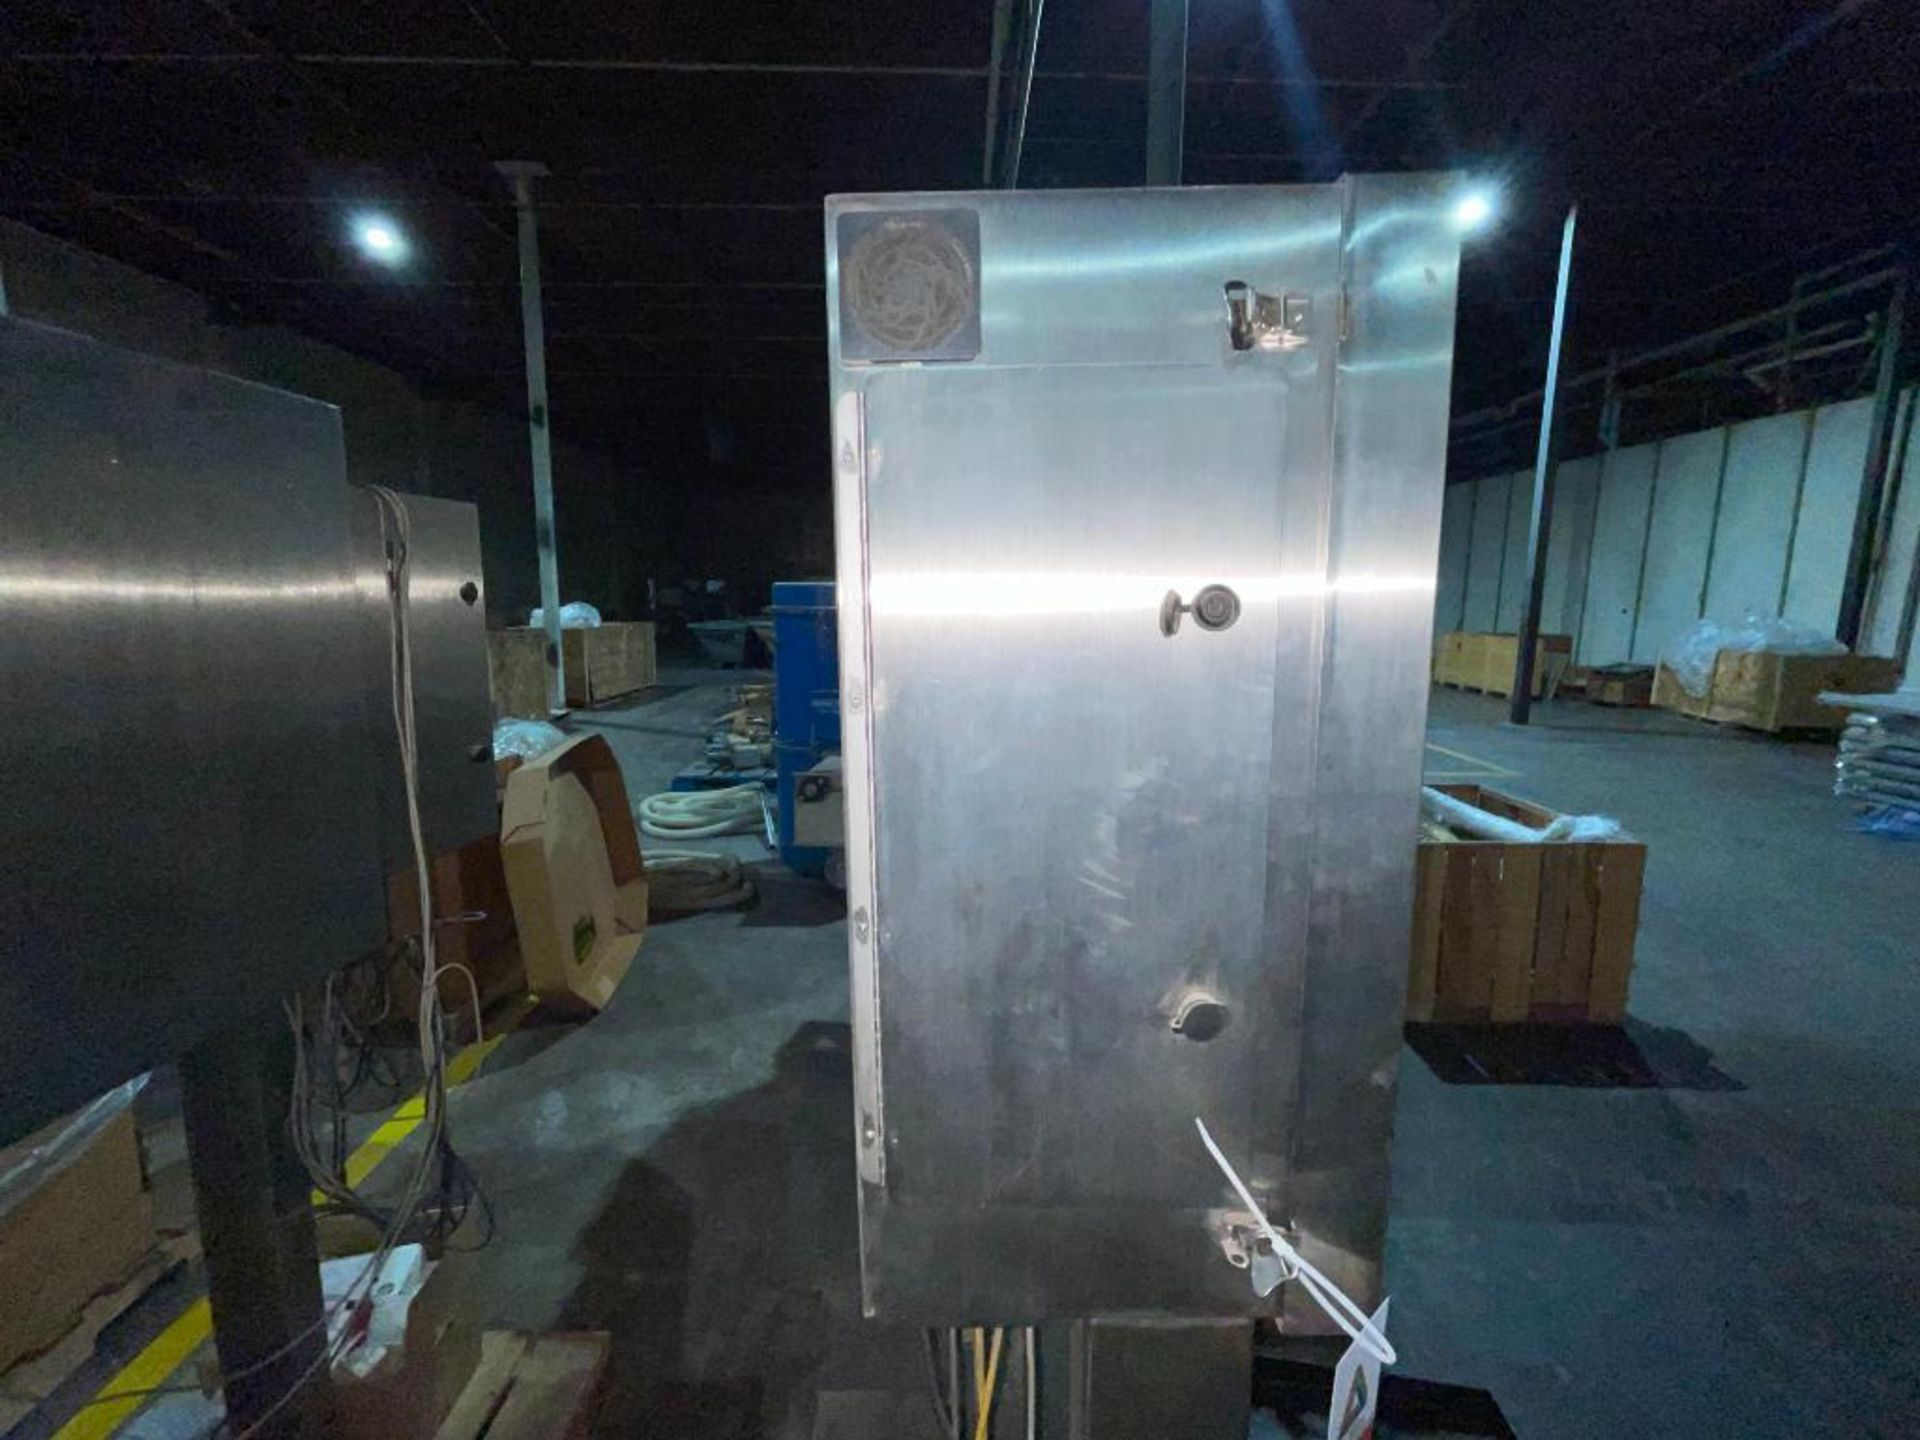 stainless steel pedestal control panel - Image 4 of 20